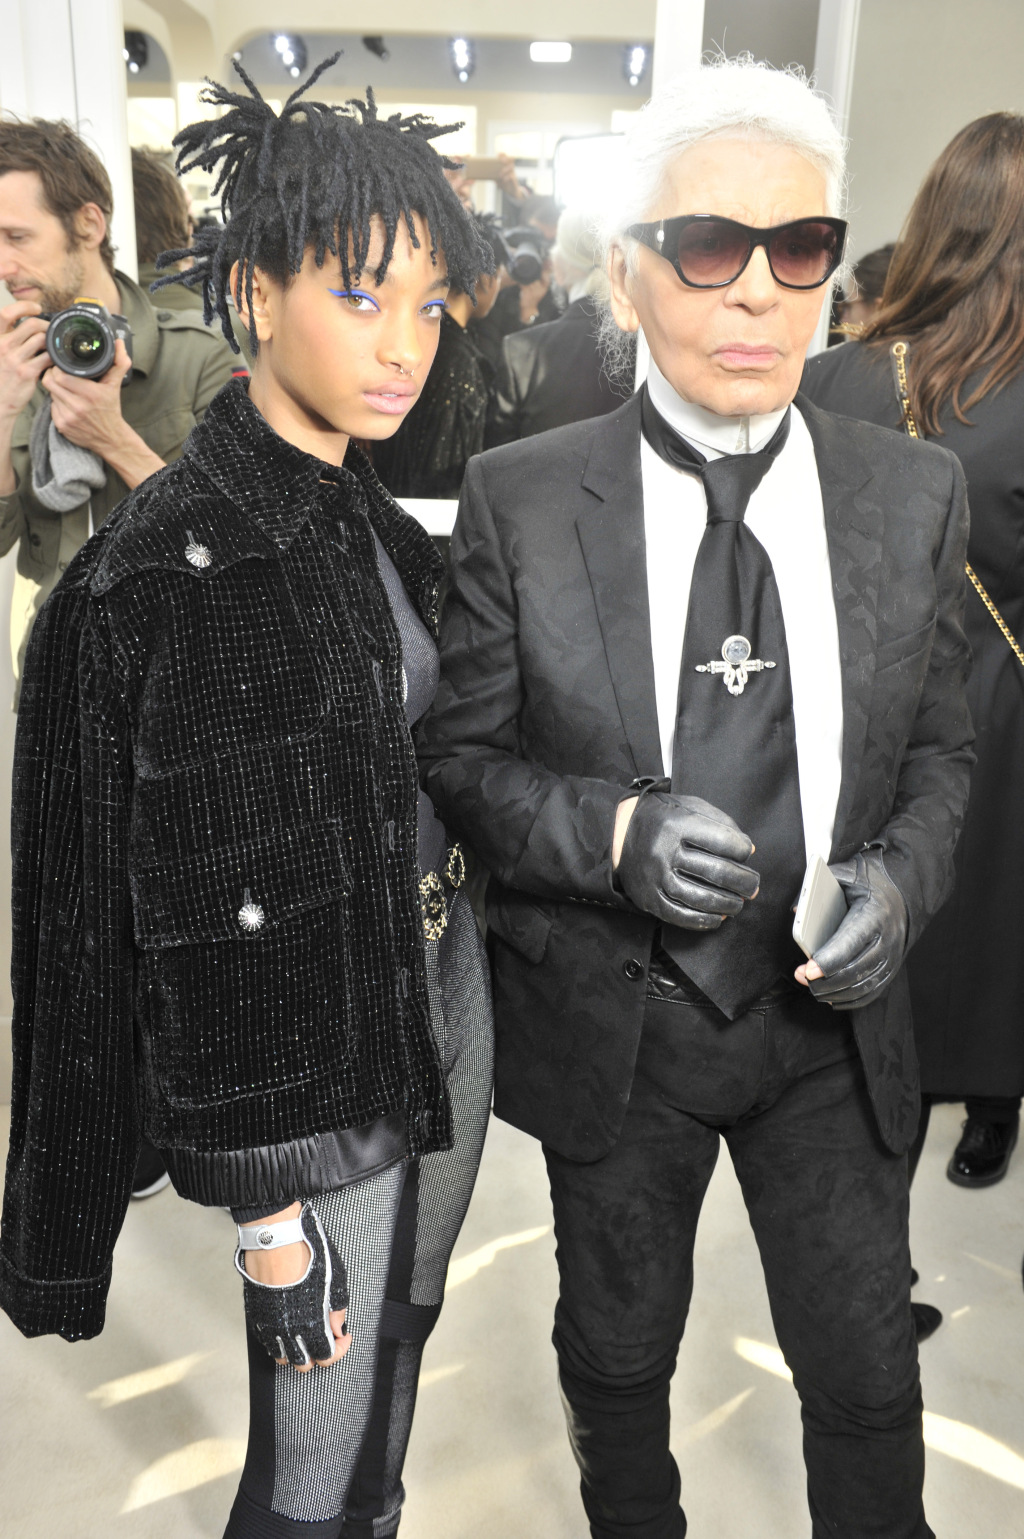 Willow and Karl Lagerfeld